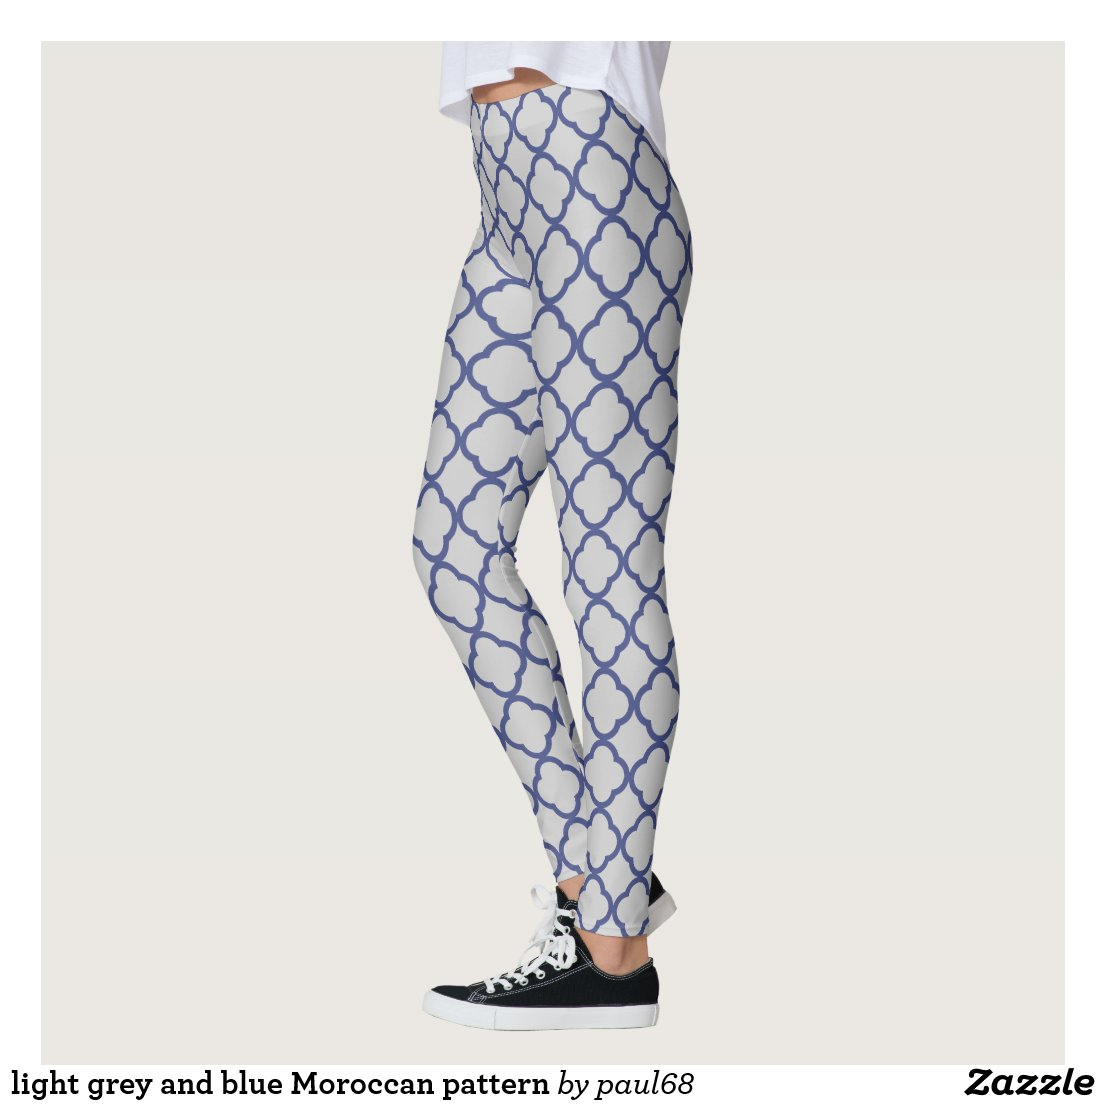 light grey and blue Moroccan pattern Leggings